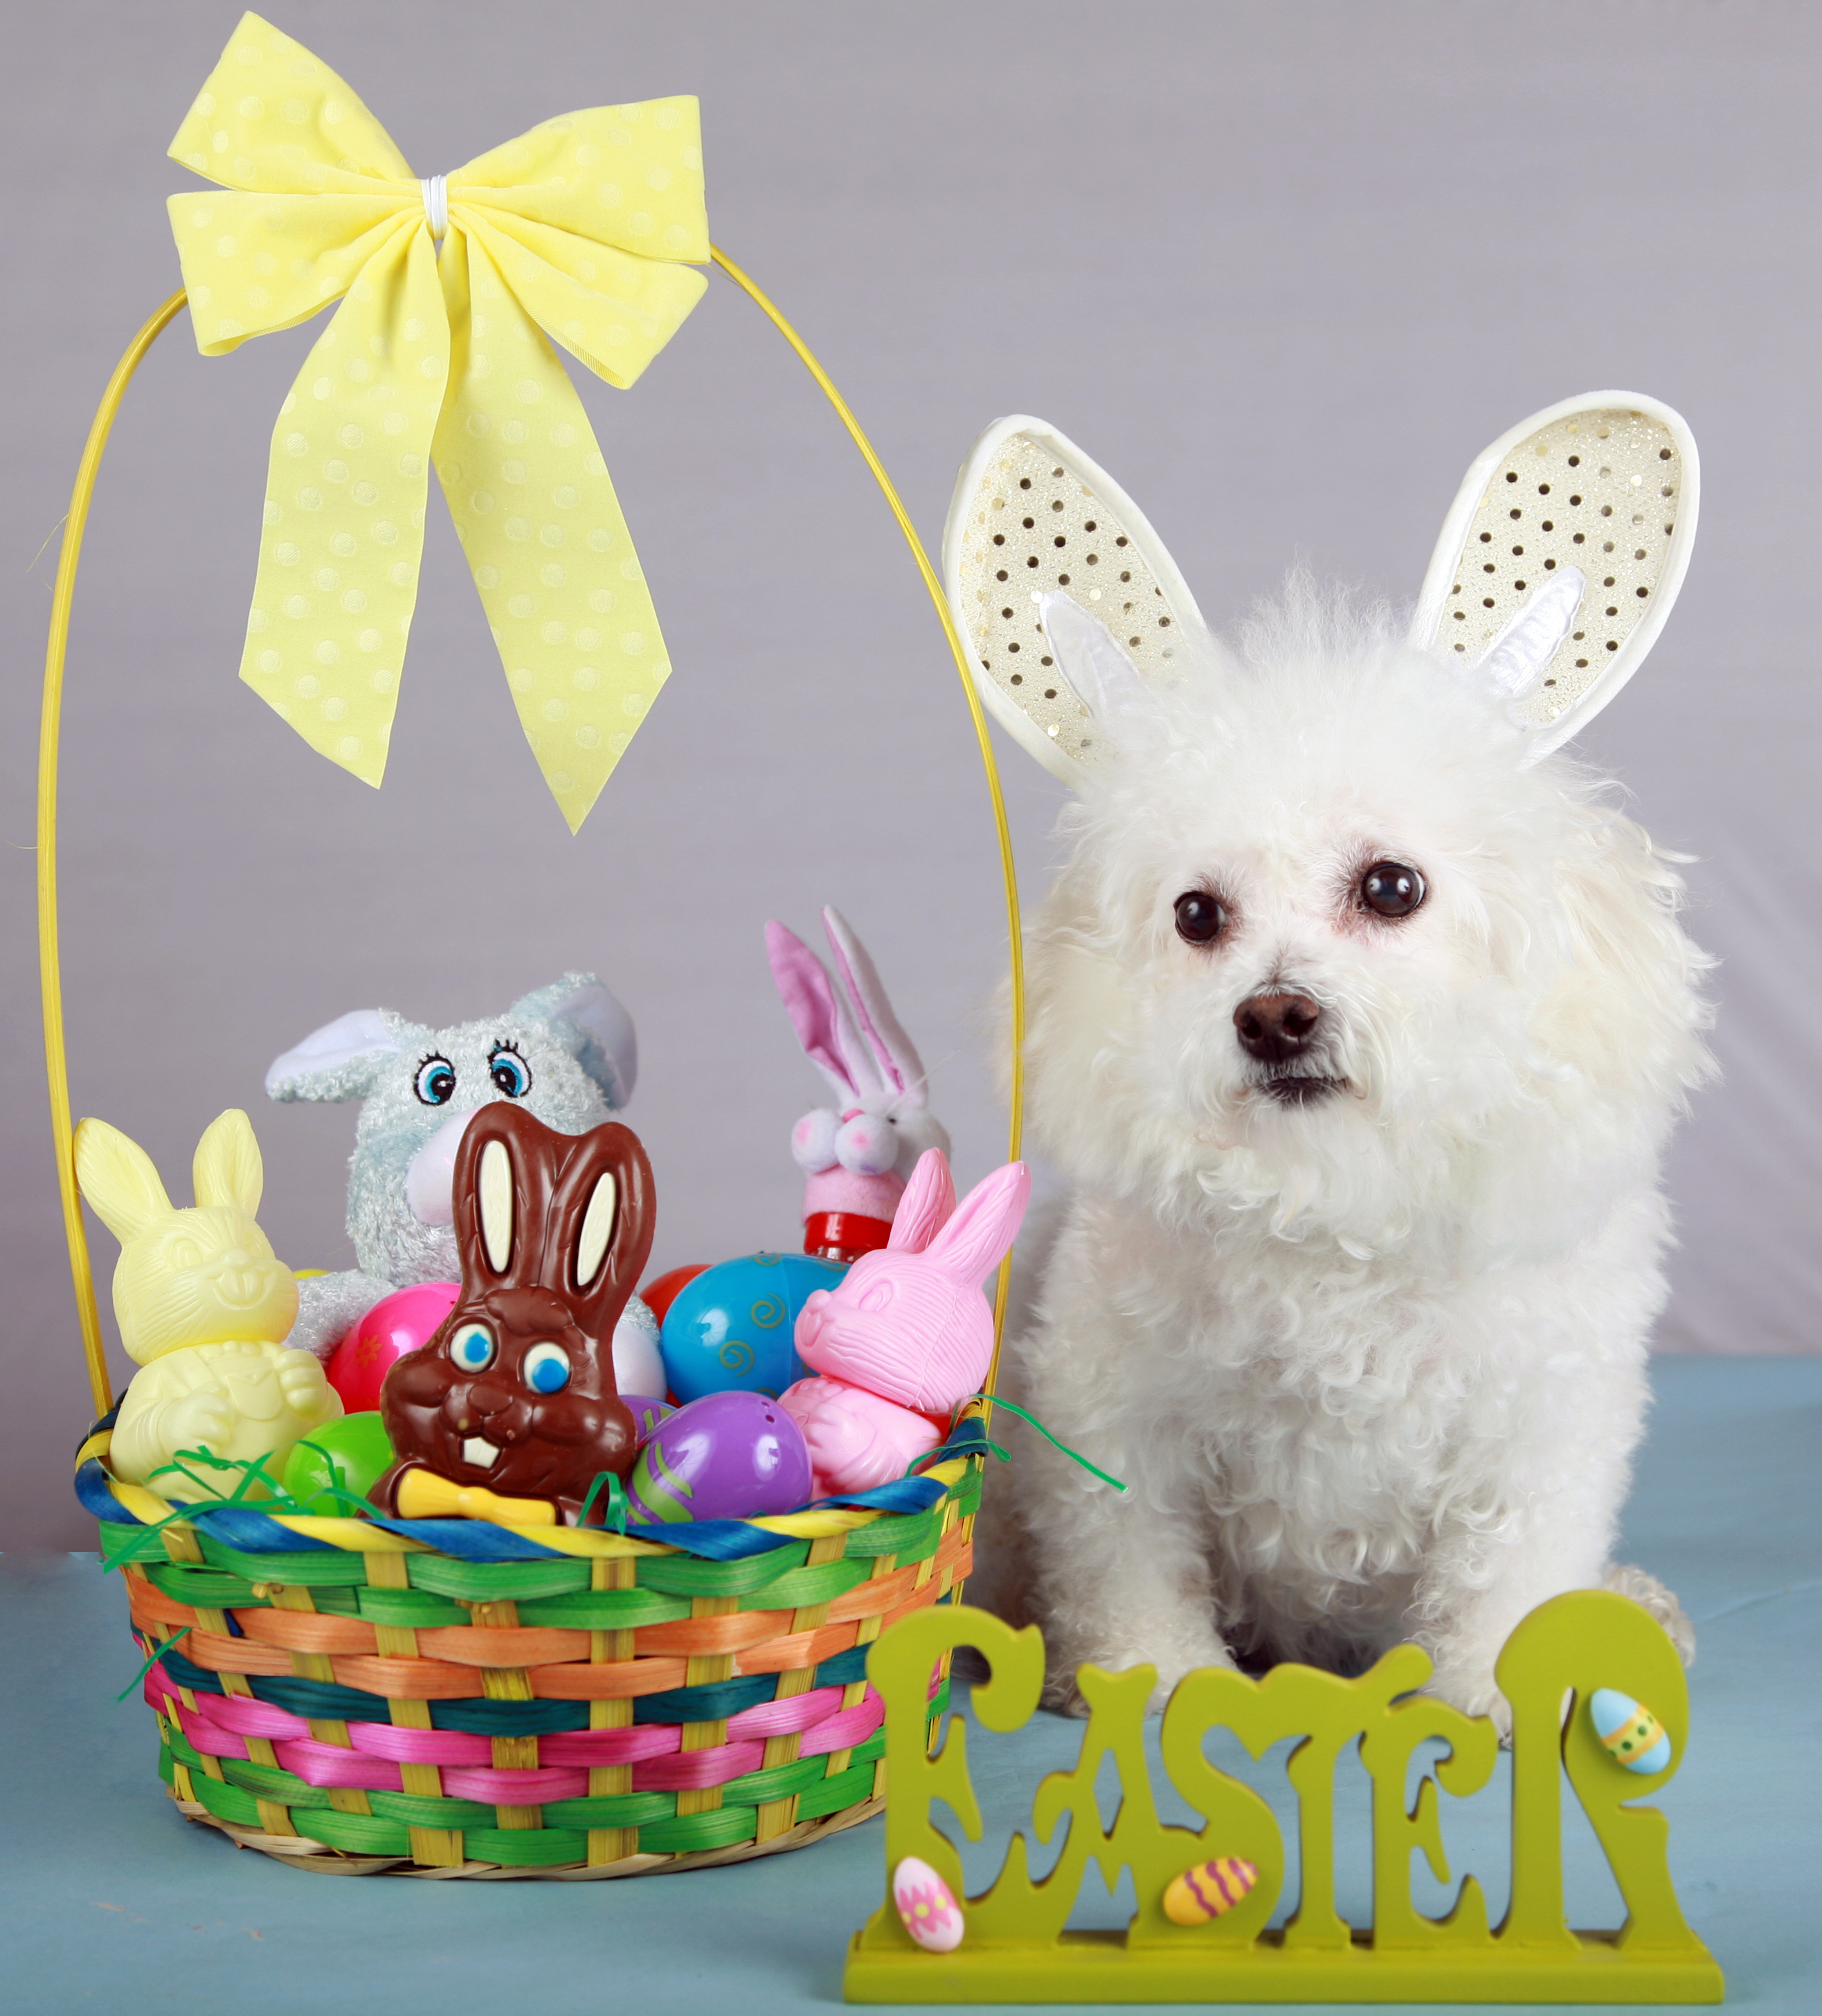 25 Dogs Who Are Posing For Their Easter Greeting Cards Dogtime